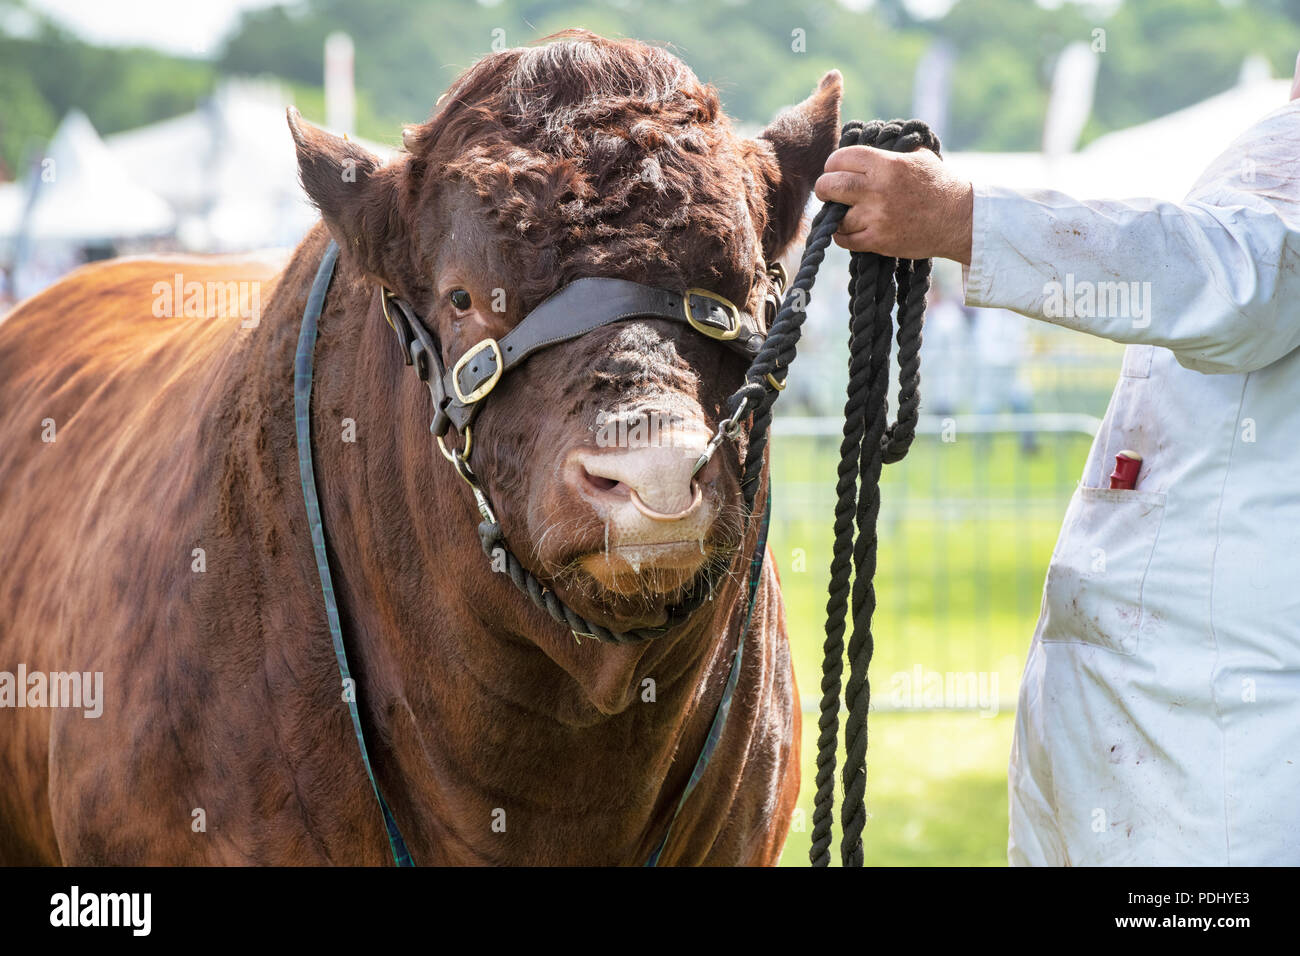 Bos taurus. Red poll bull on show at the 2018 Royal Three Counties Show. Malvern, Worcestershire, UK - Stock Image